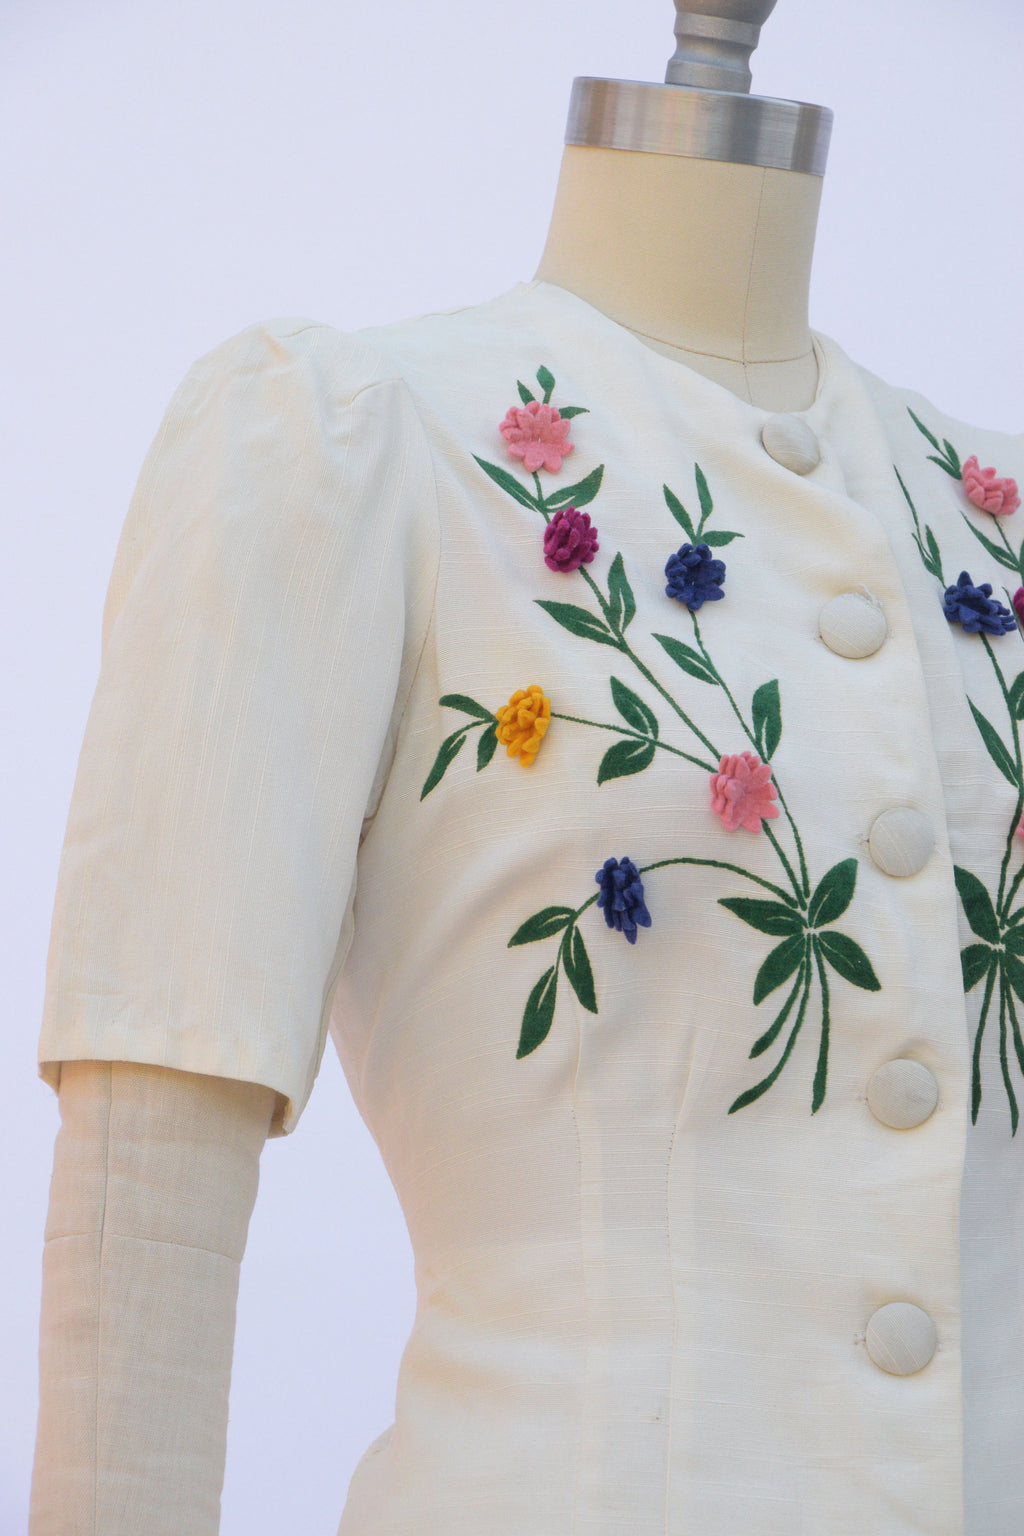 Glorious Late 1930s Suit in Ivory with Three Dimensional Felt Flowers and Flocked Stems